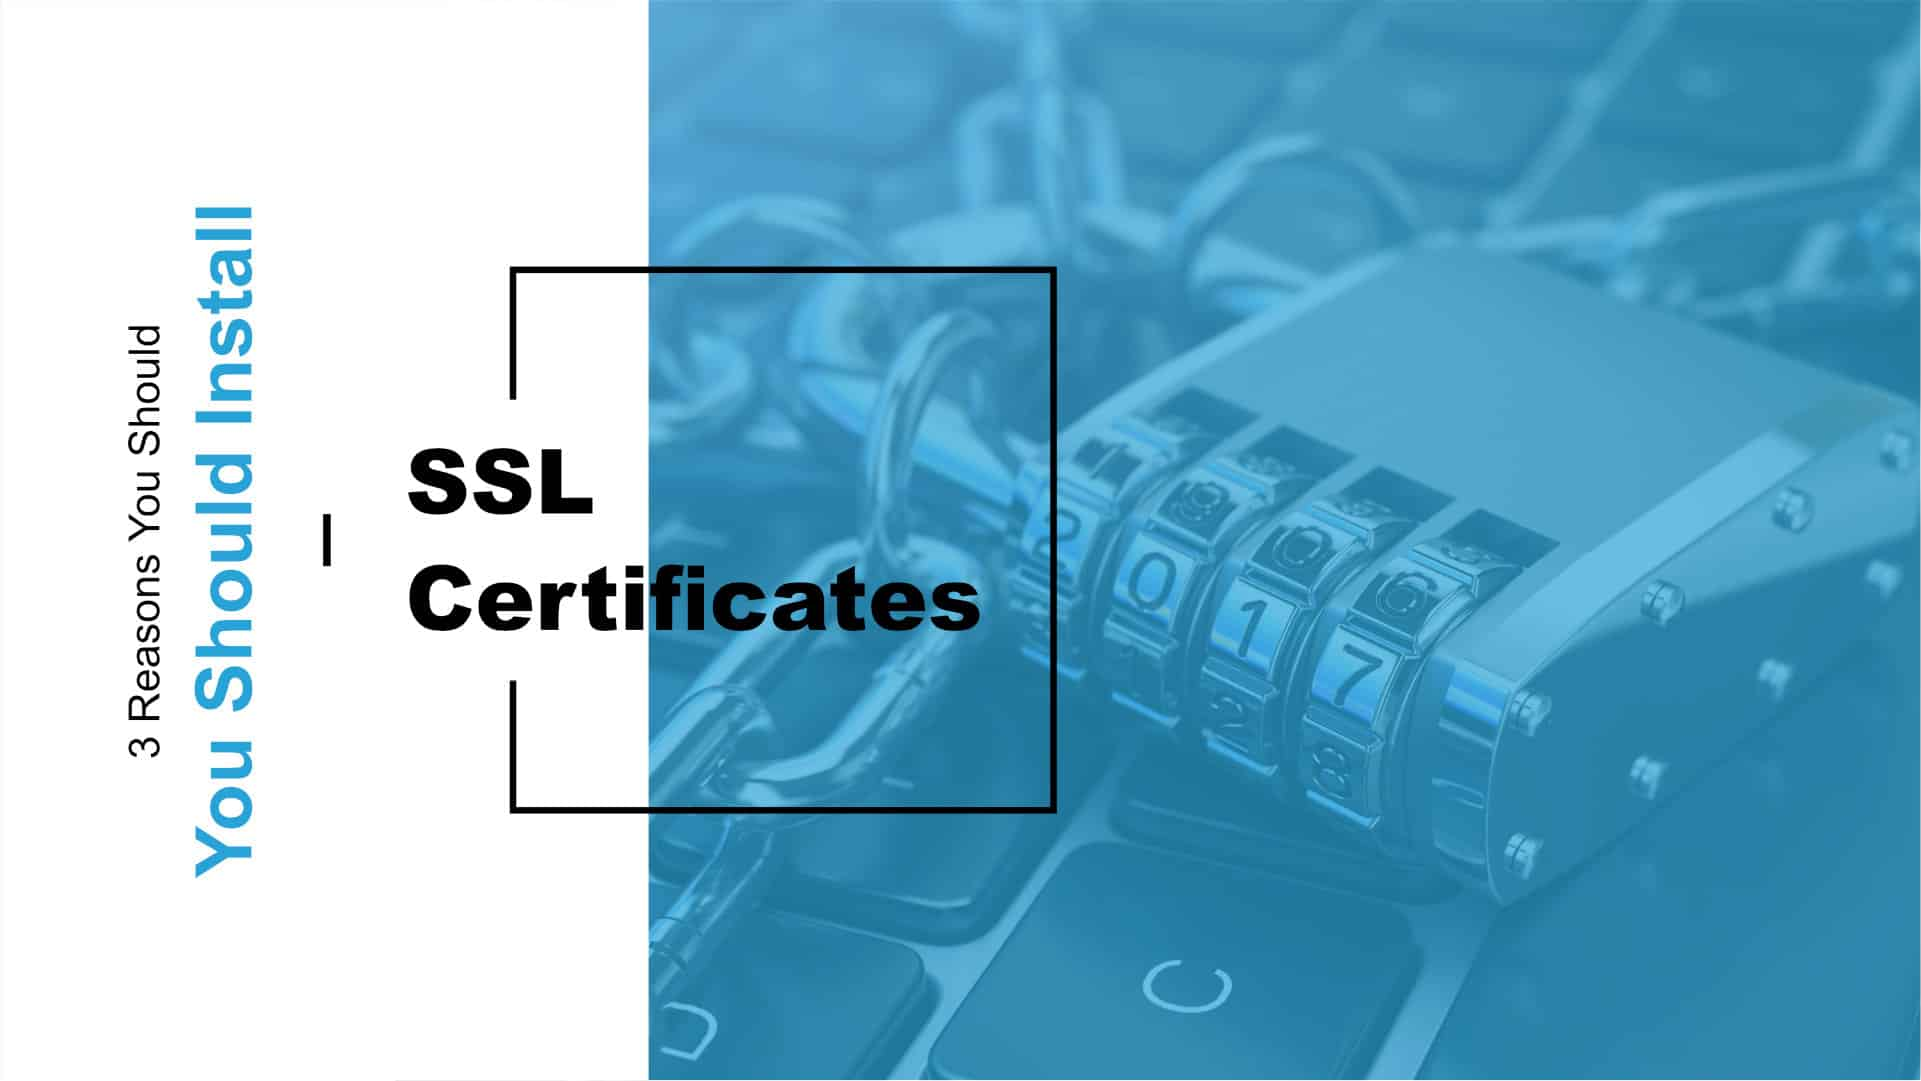 3 Reasons You Should Have an SSL Certificate on Your Website Featured Image